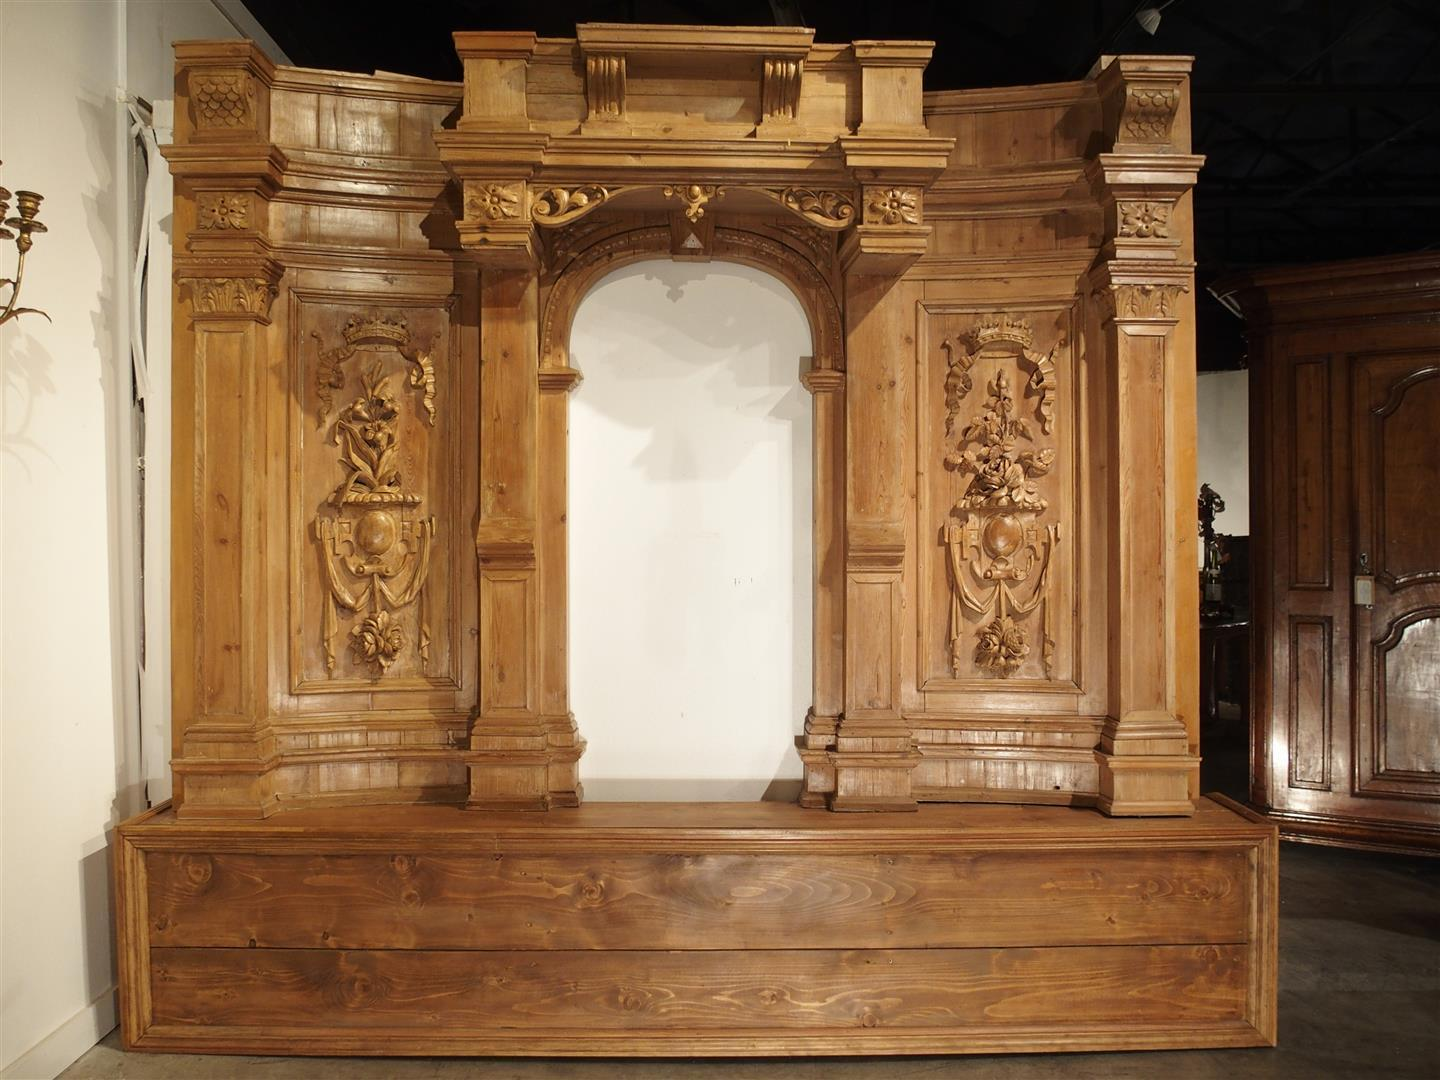 A Large and Unique Antique French Boiserie Section with Covered Alcove, 17th Century Elements